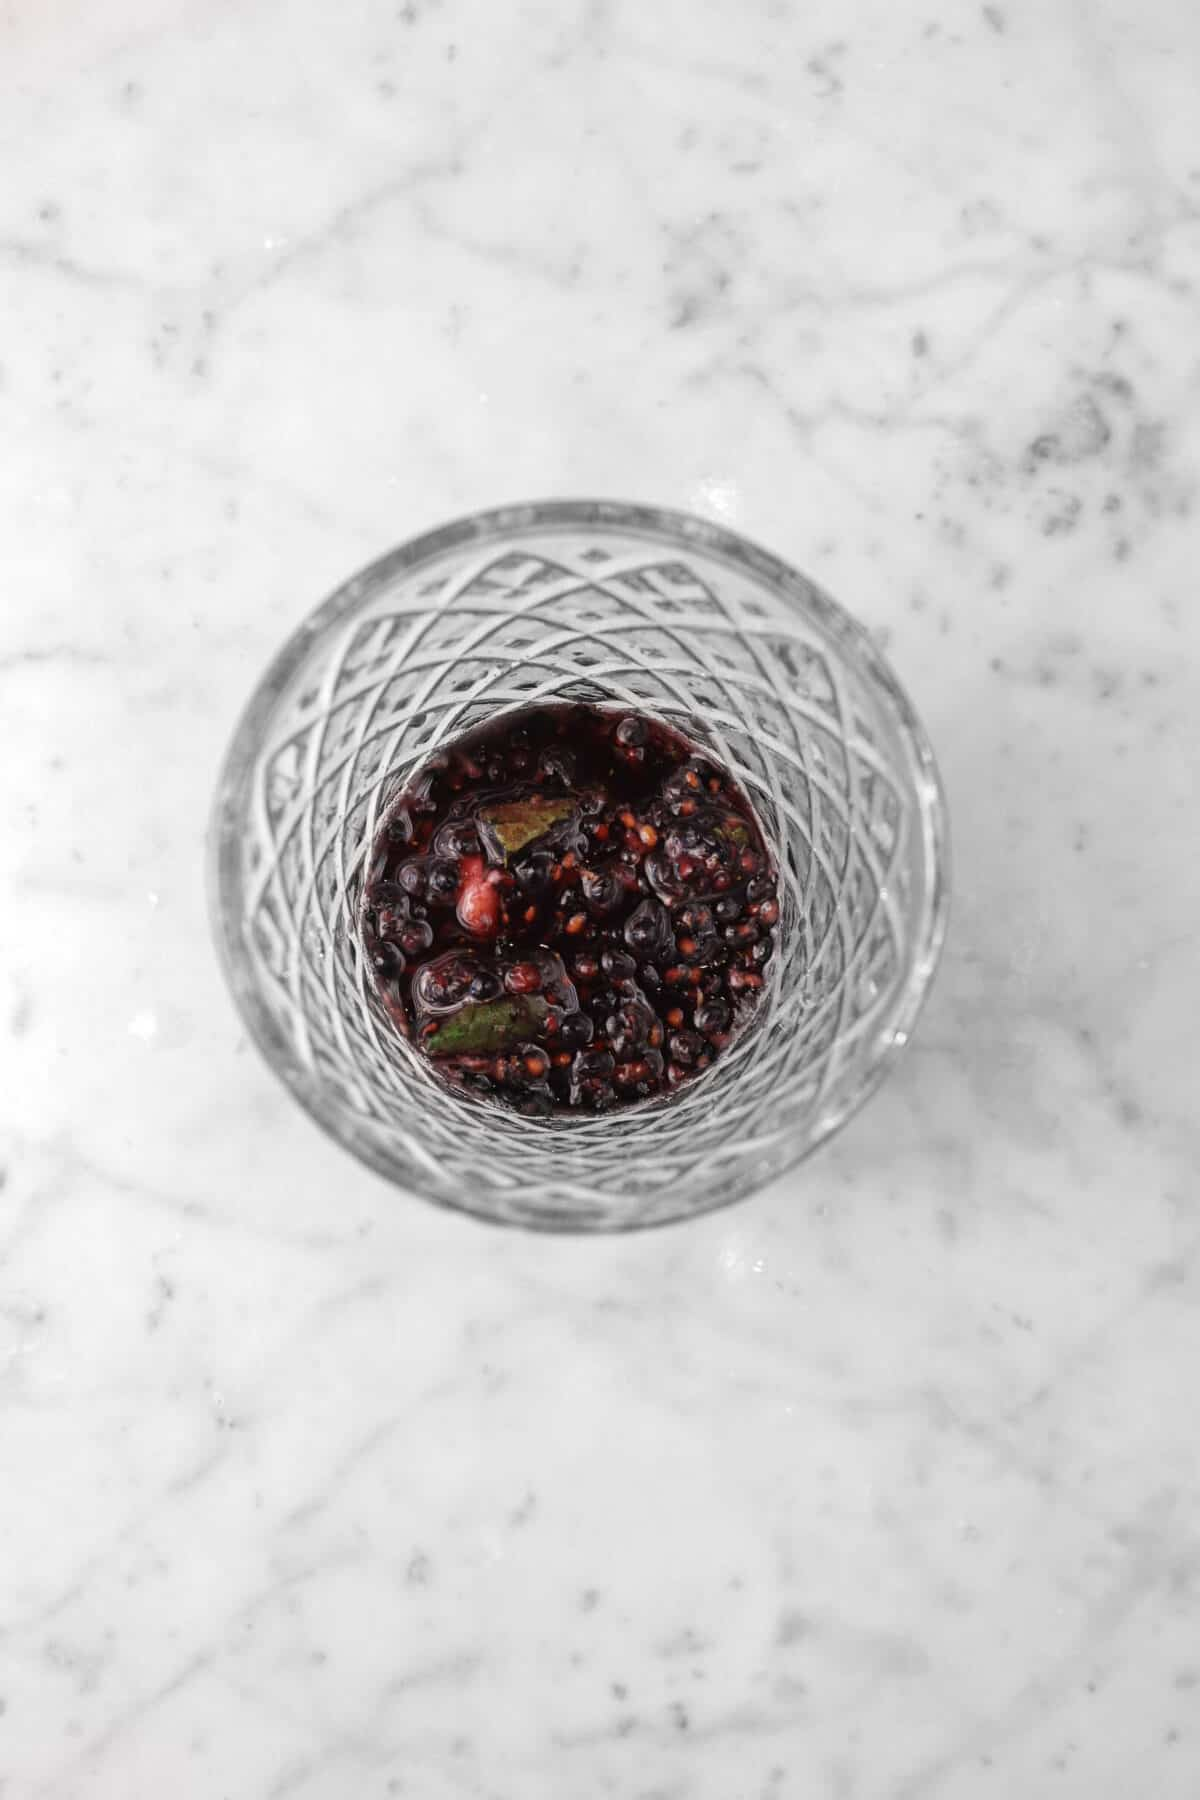 crushed mint and blackberries in a glass